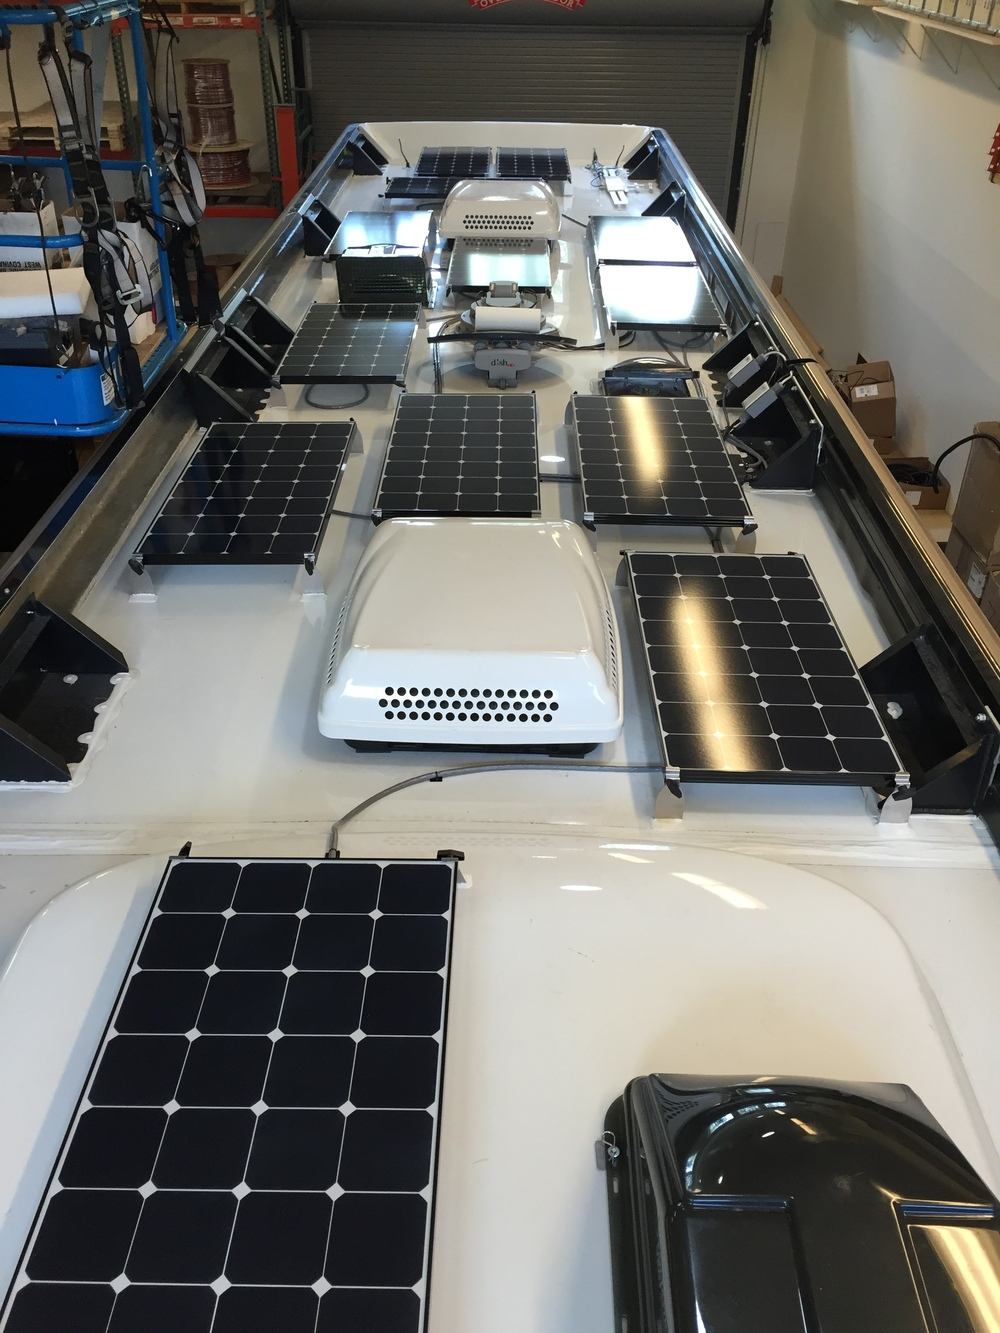 Equipment Added: 14x  SP100 Solar Panel Kits  (1,400W of Solar) 1x  Roof Box  1x Victron BlueSolar MPPT150/100-Tr 1x  Victron MPPT Control Monitor  1x  Victron BMV-702